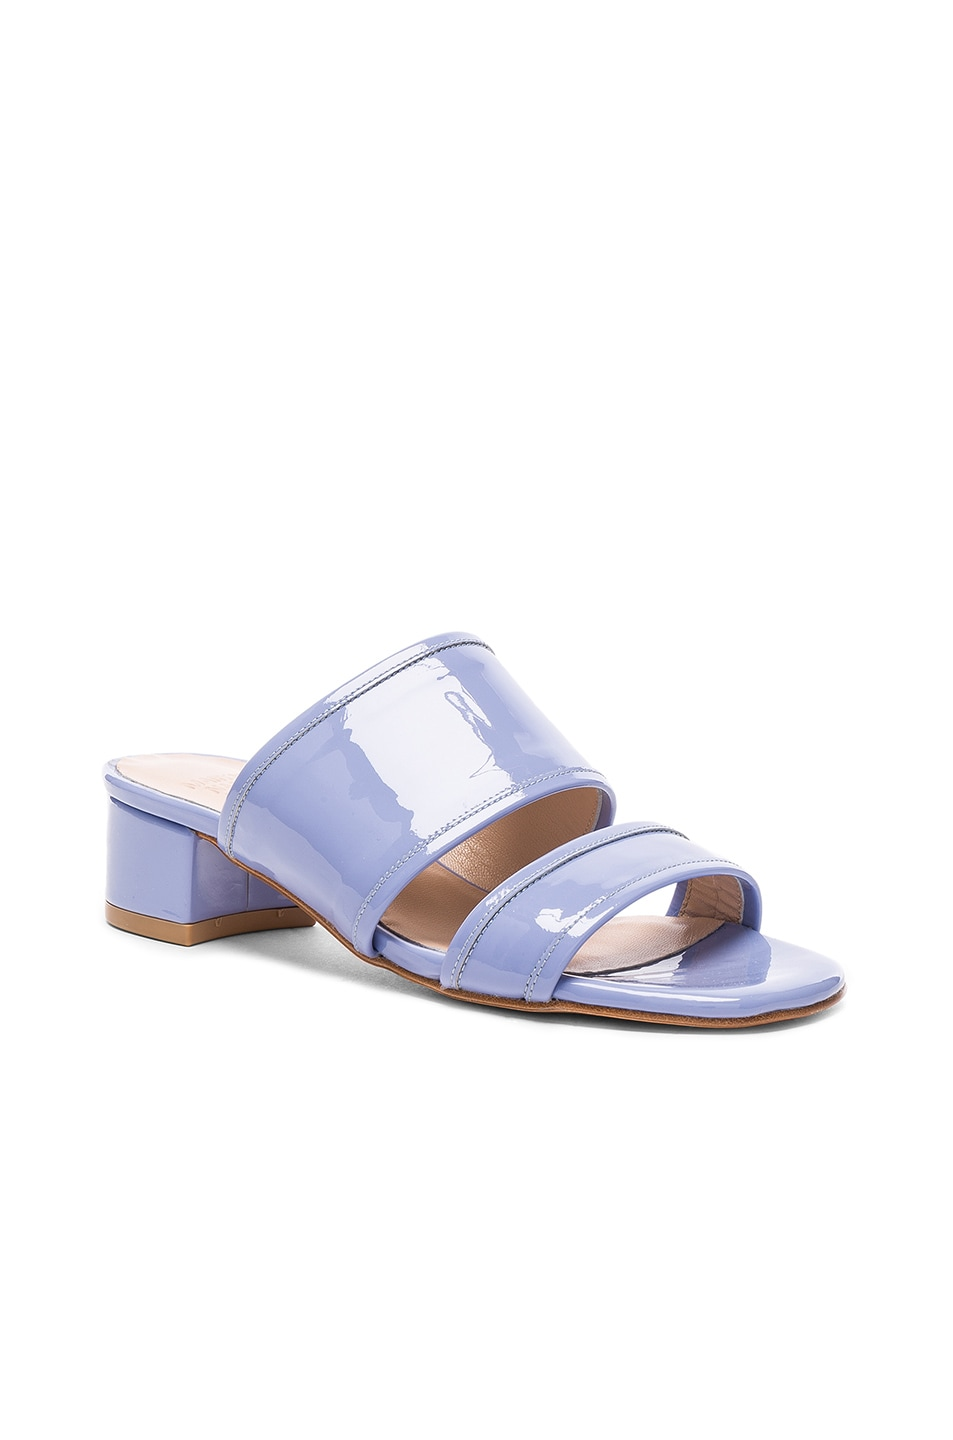 Image 2 of Maryam Nassir Zadeh Patent Leather Martina Slide Sandals in Periwinkle Patent